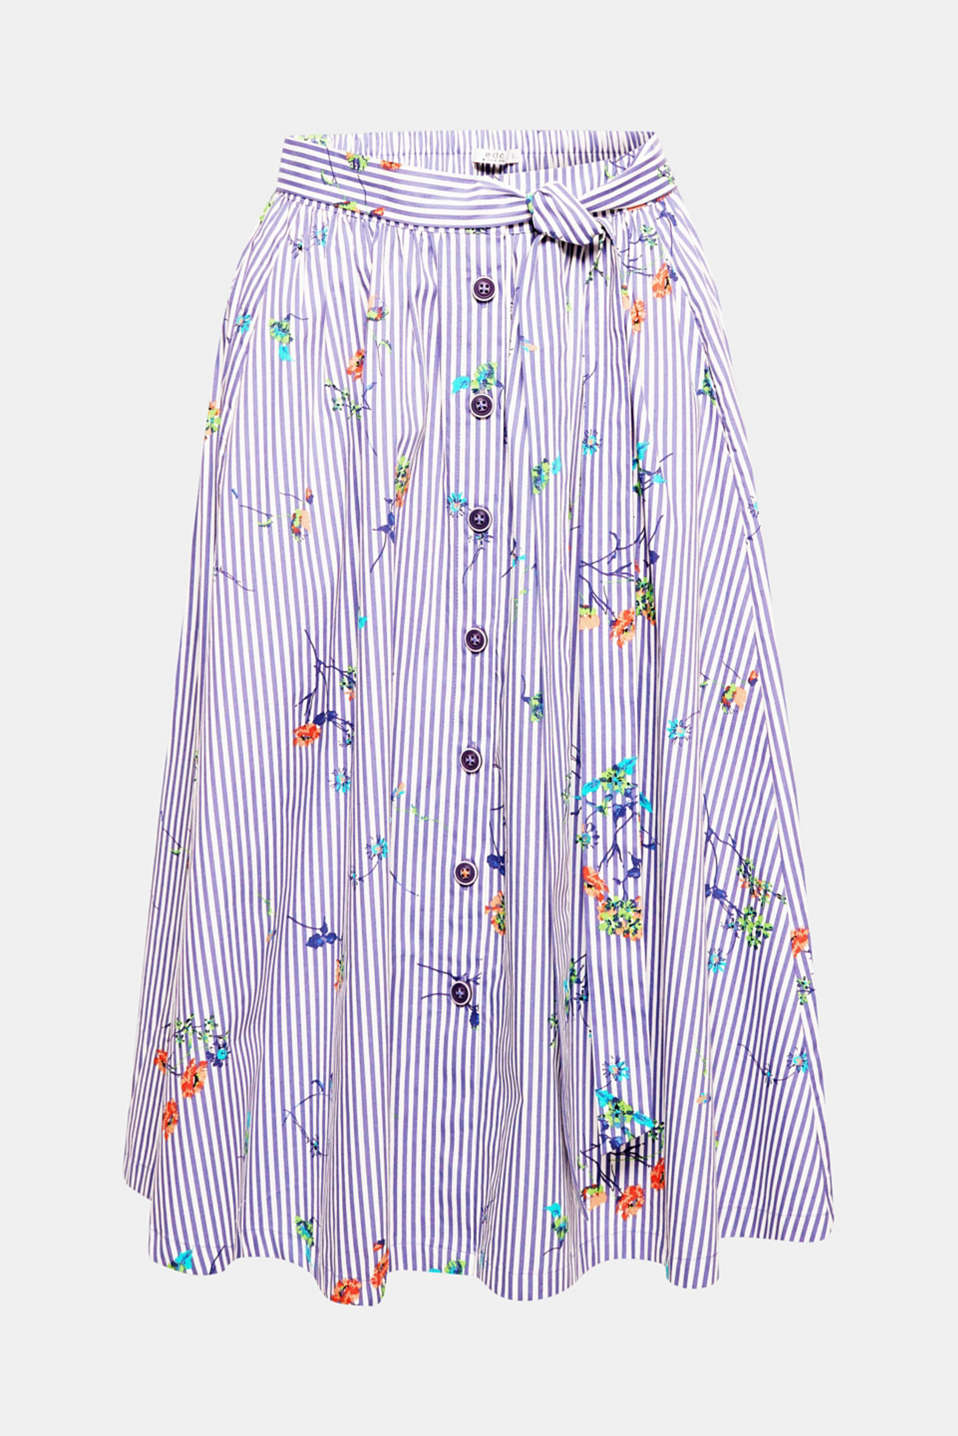 This cotton skirt features a fashionable midi length and a fresh mixed pattern consisting of stripes and romantic flowers, making it a fashion piece for summer.